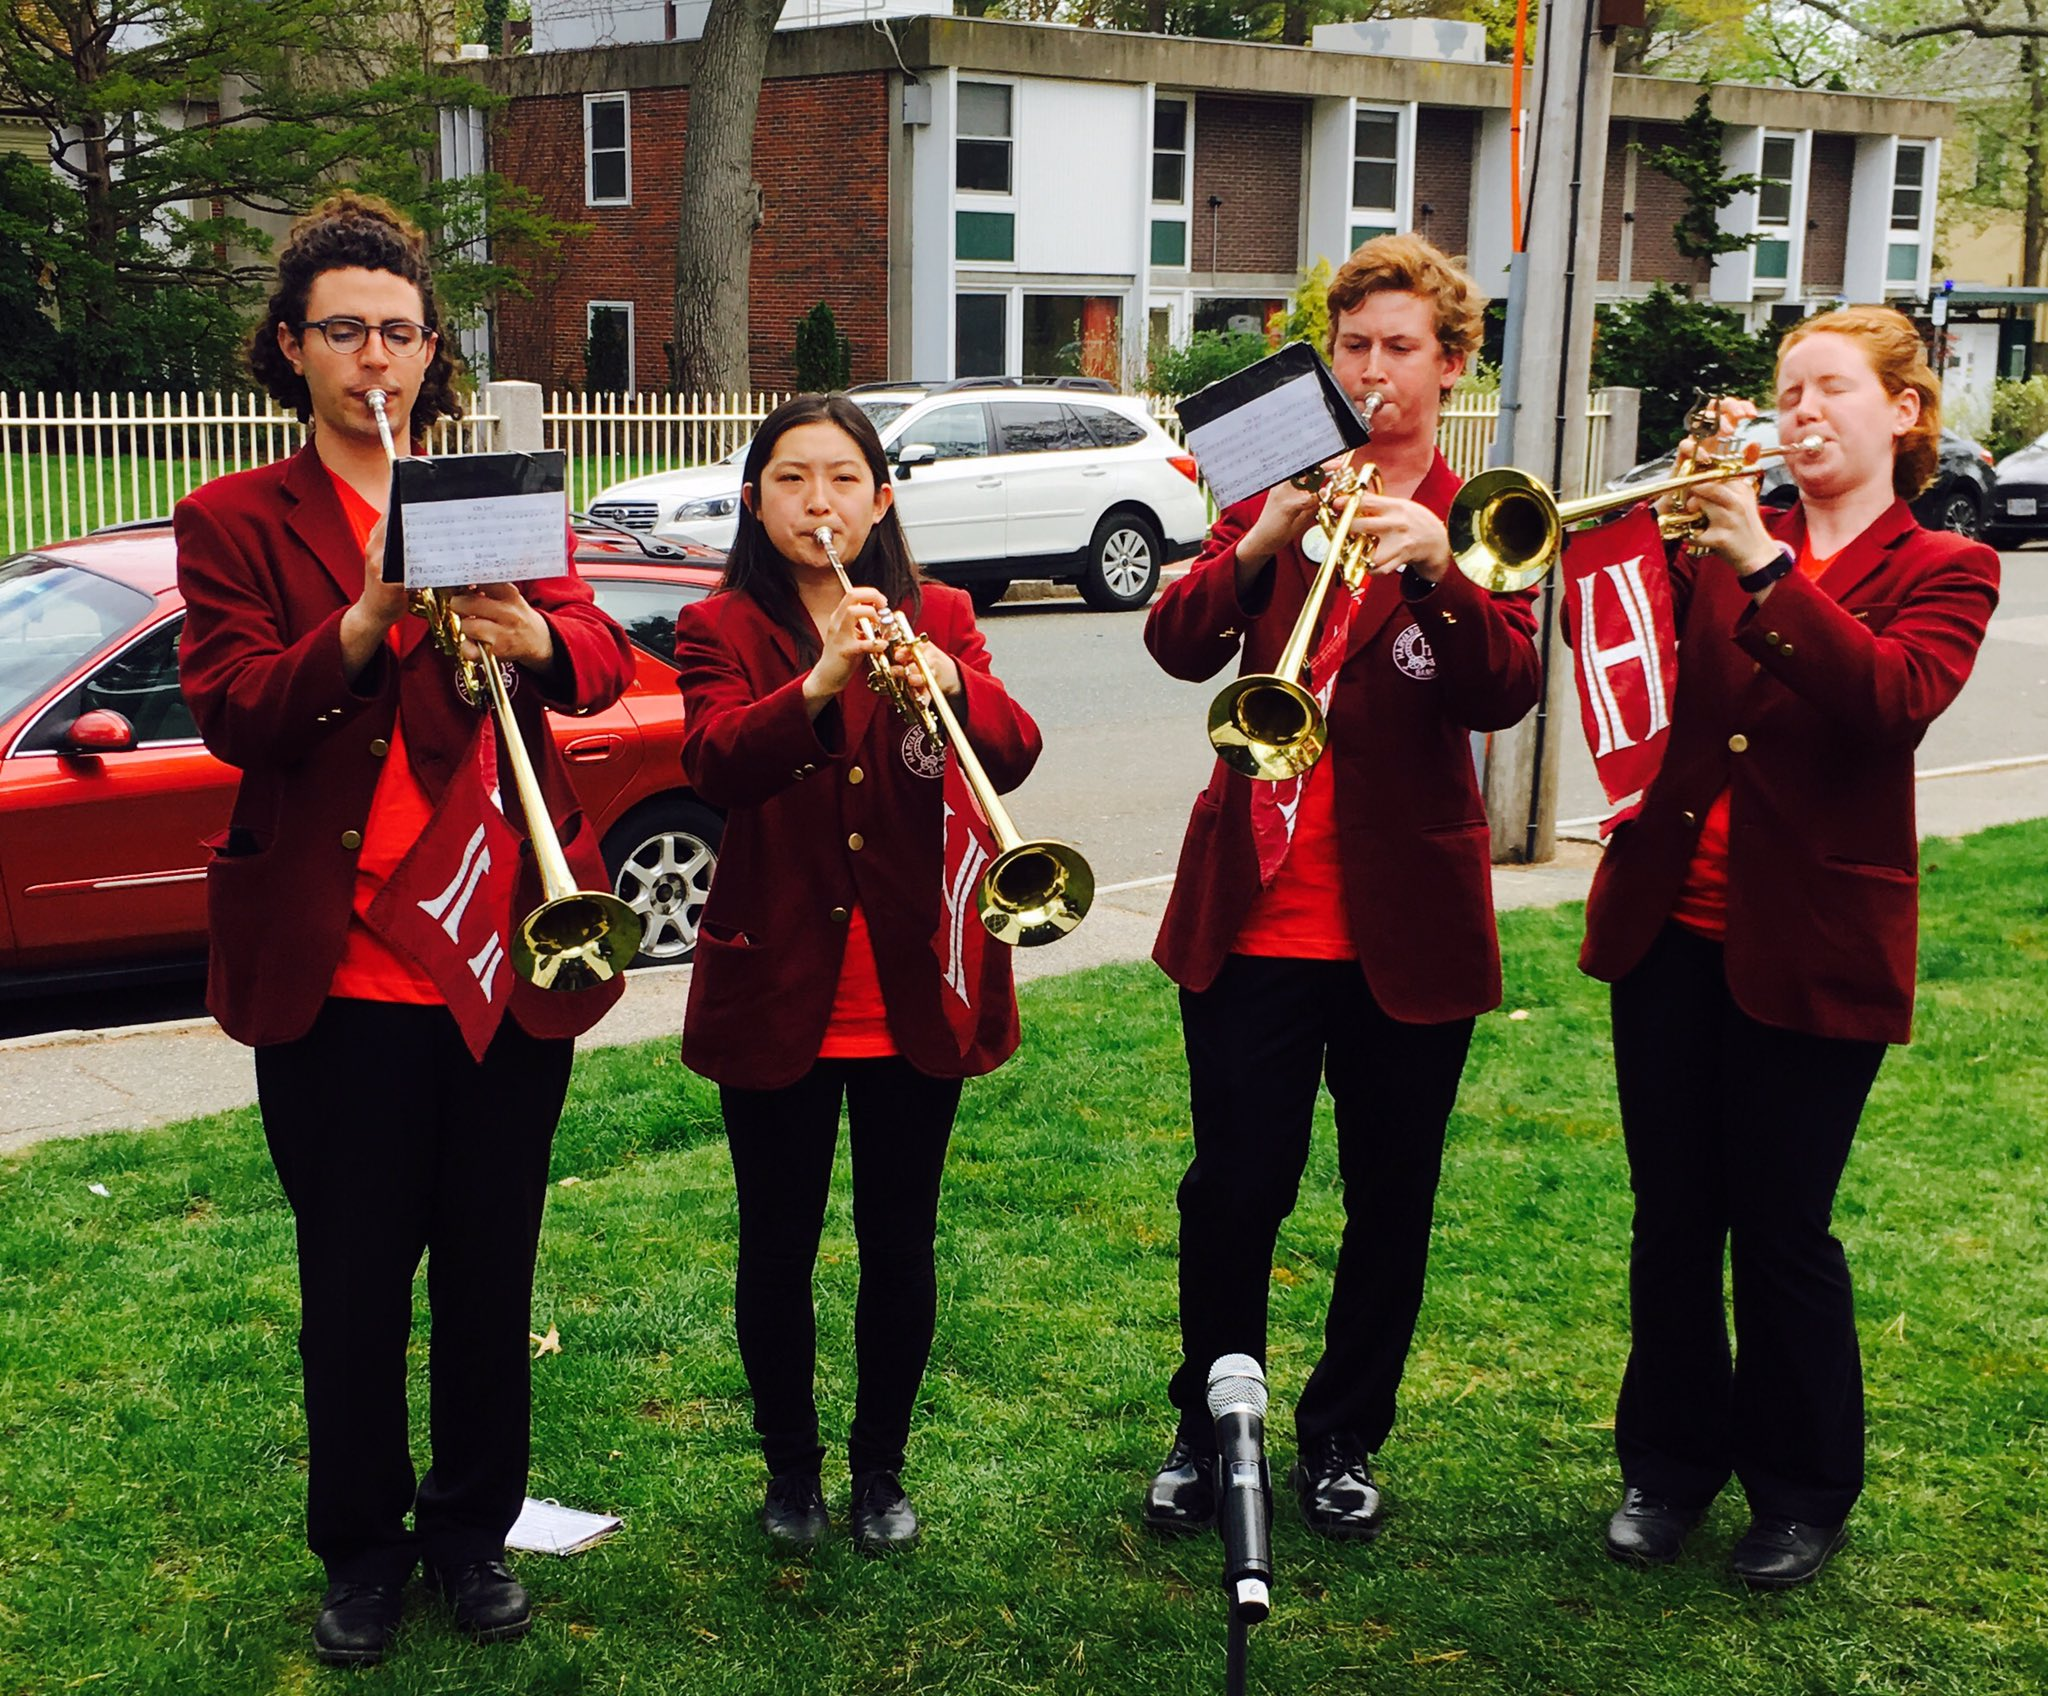 Harvard Herald Trumpeters at the Gomes Honors Ceremony #HDS200 https://t.co/LgTjcD8d14